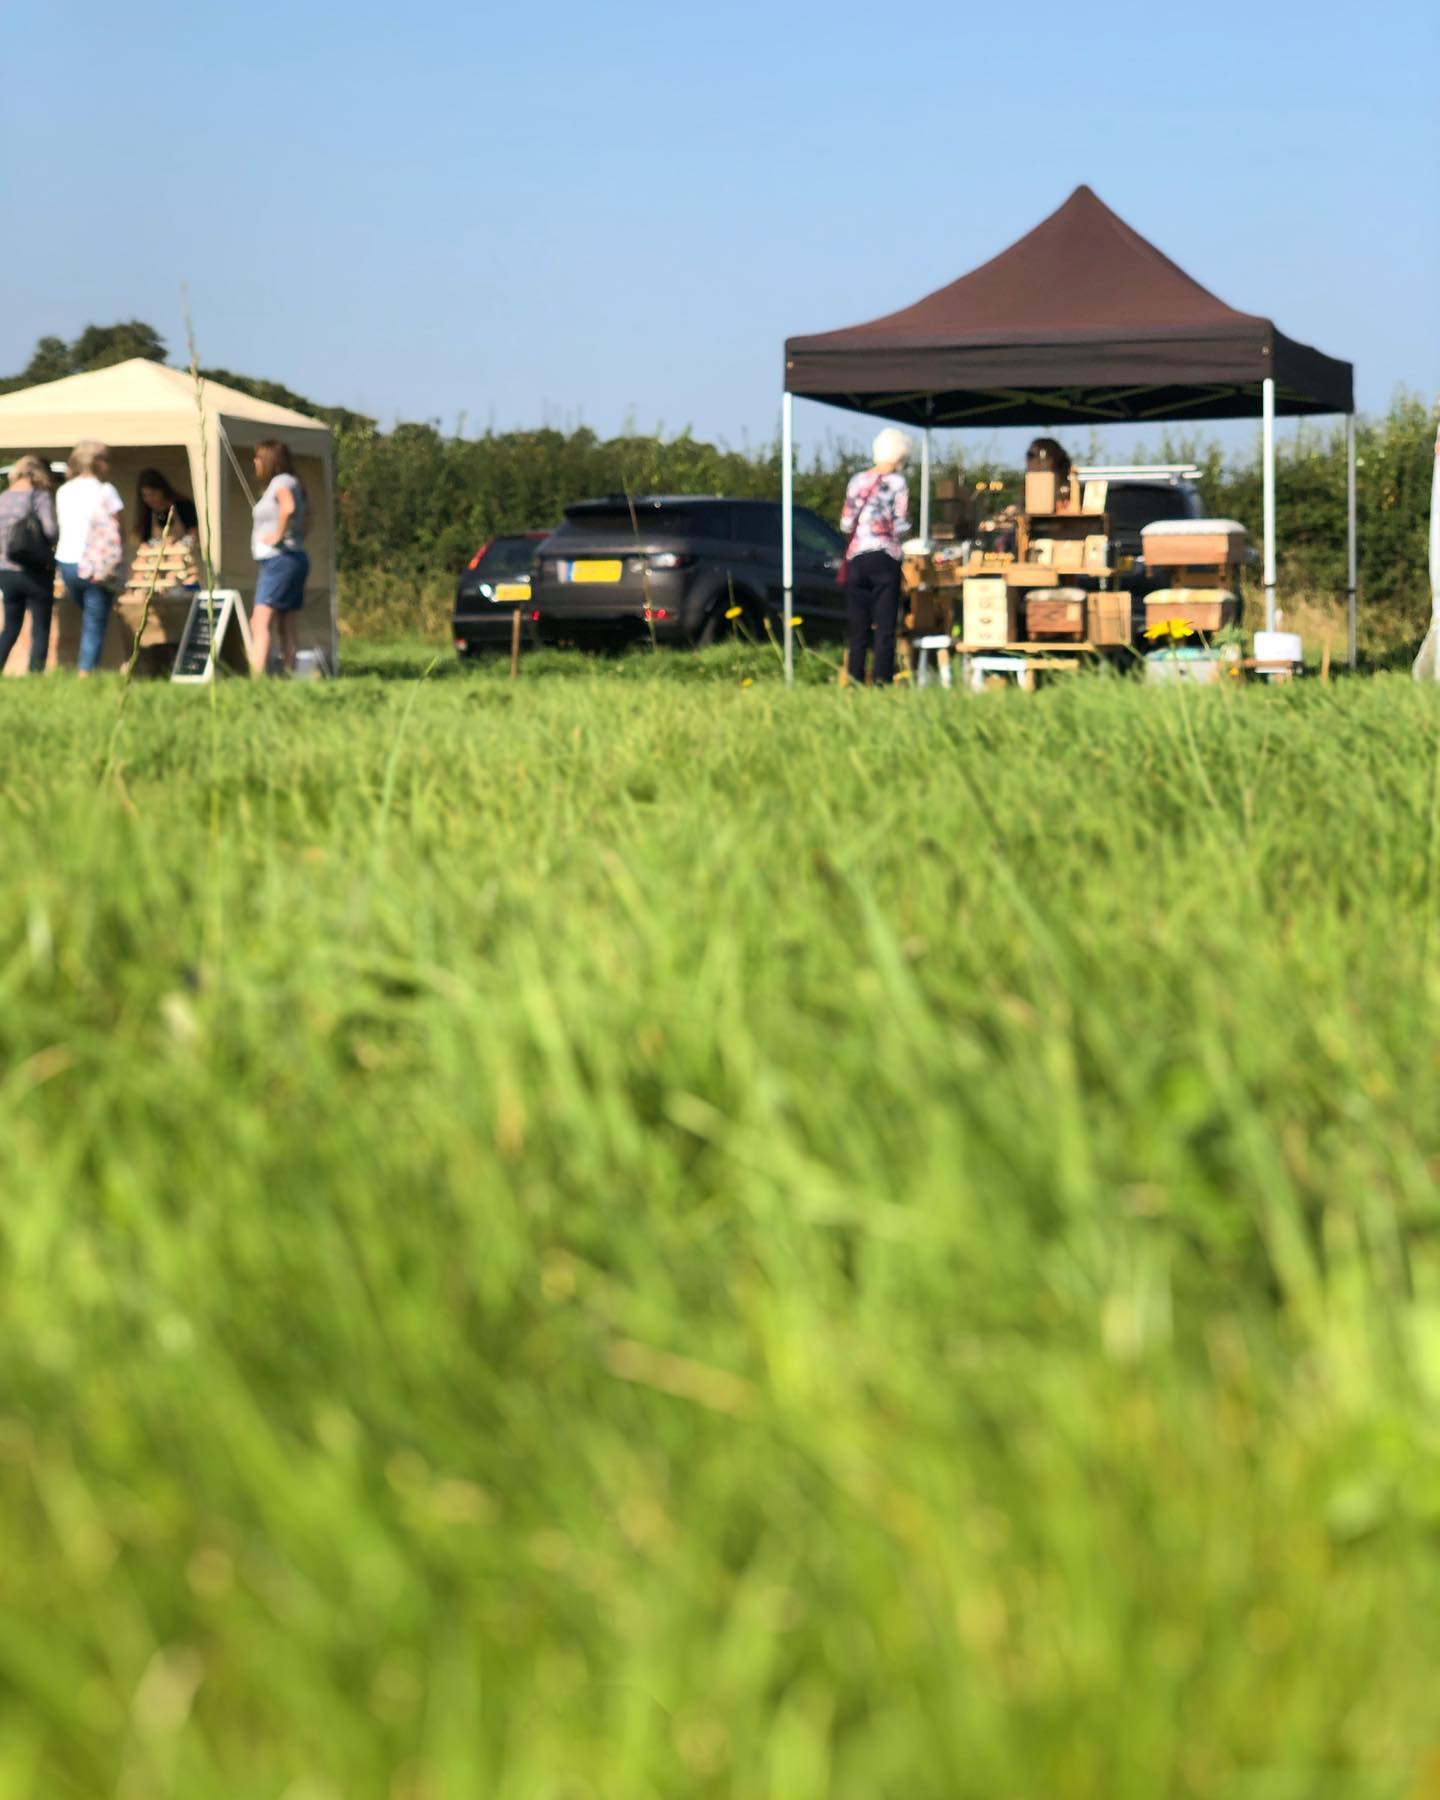 Lovely spot today! Here at the North Somerset Showground until 3pm!